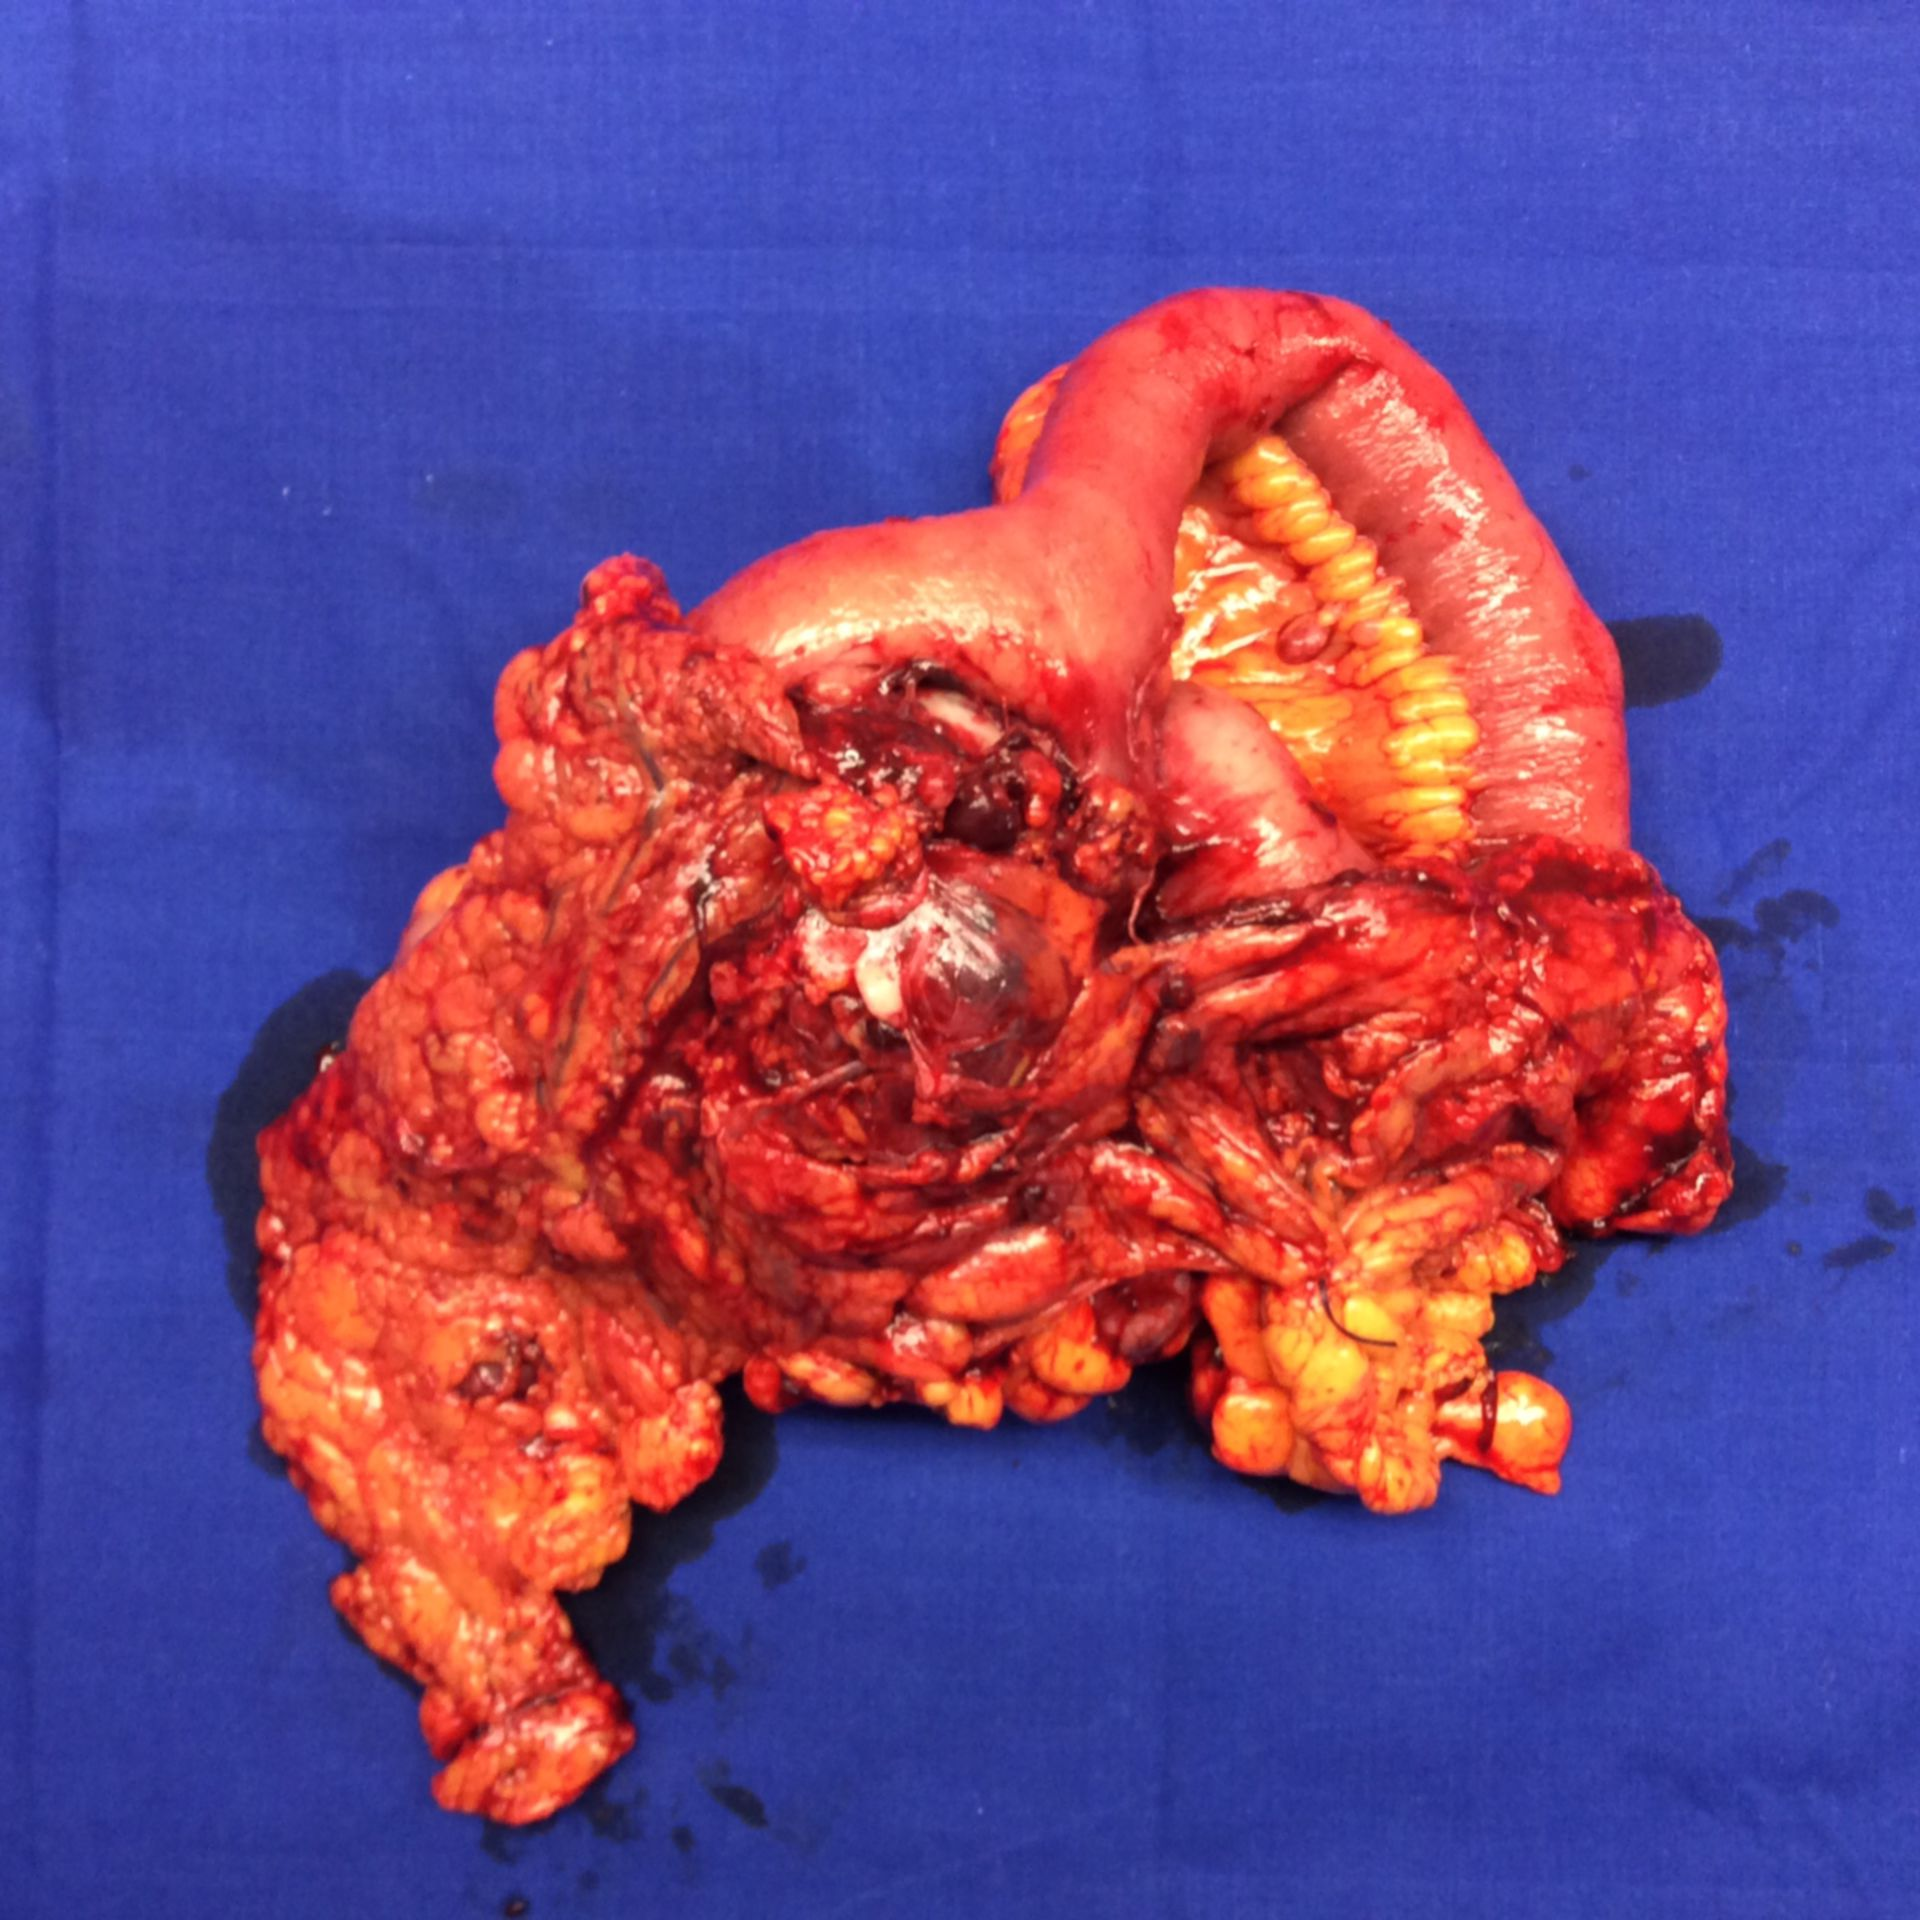 Intestinal tumor - resected tissue